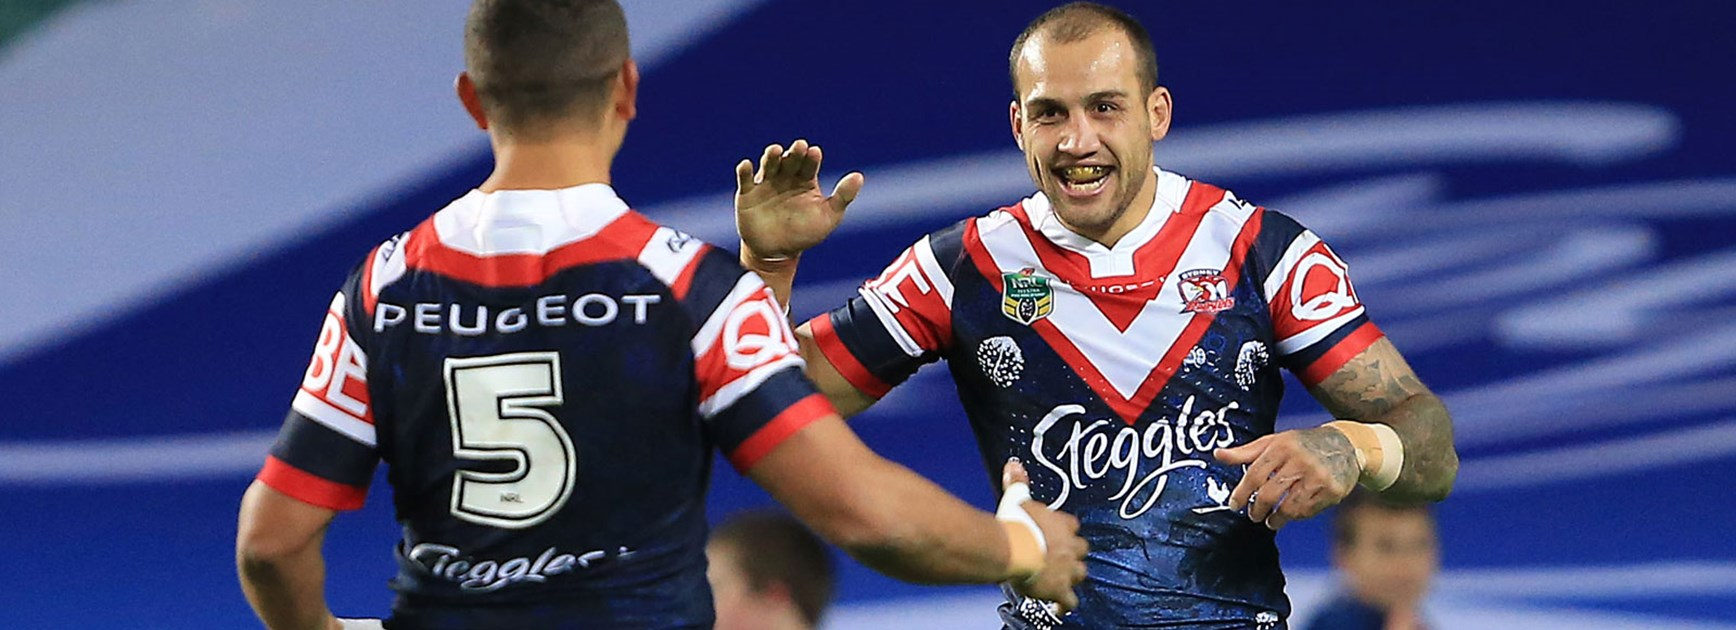 Roosters fullback Blake Ferguson was strong as his side downed the Broncos.